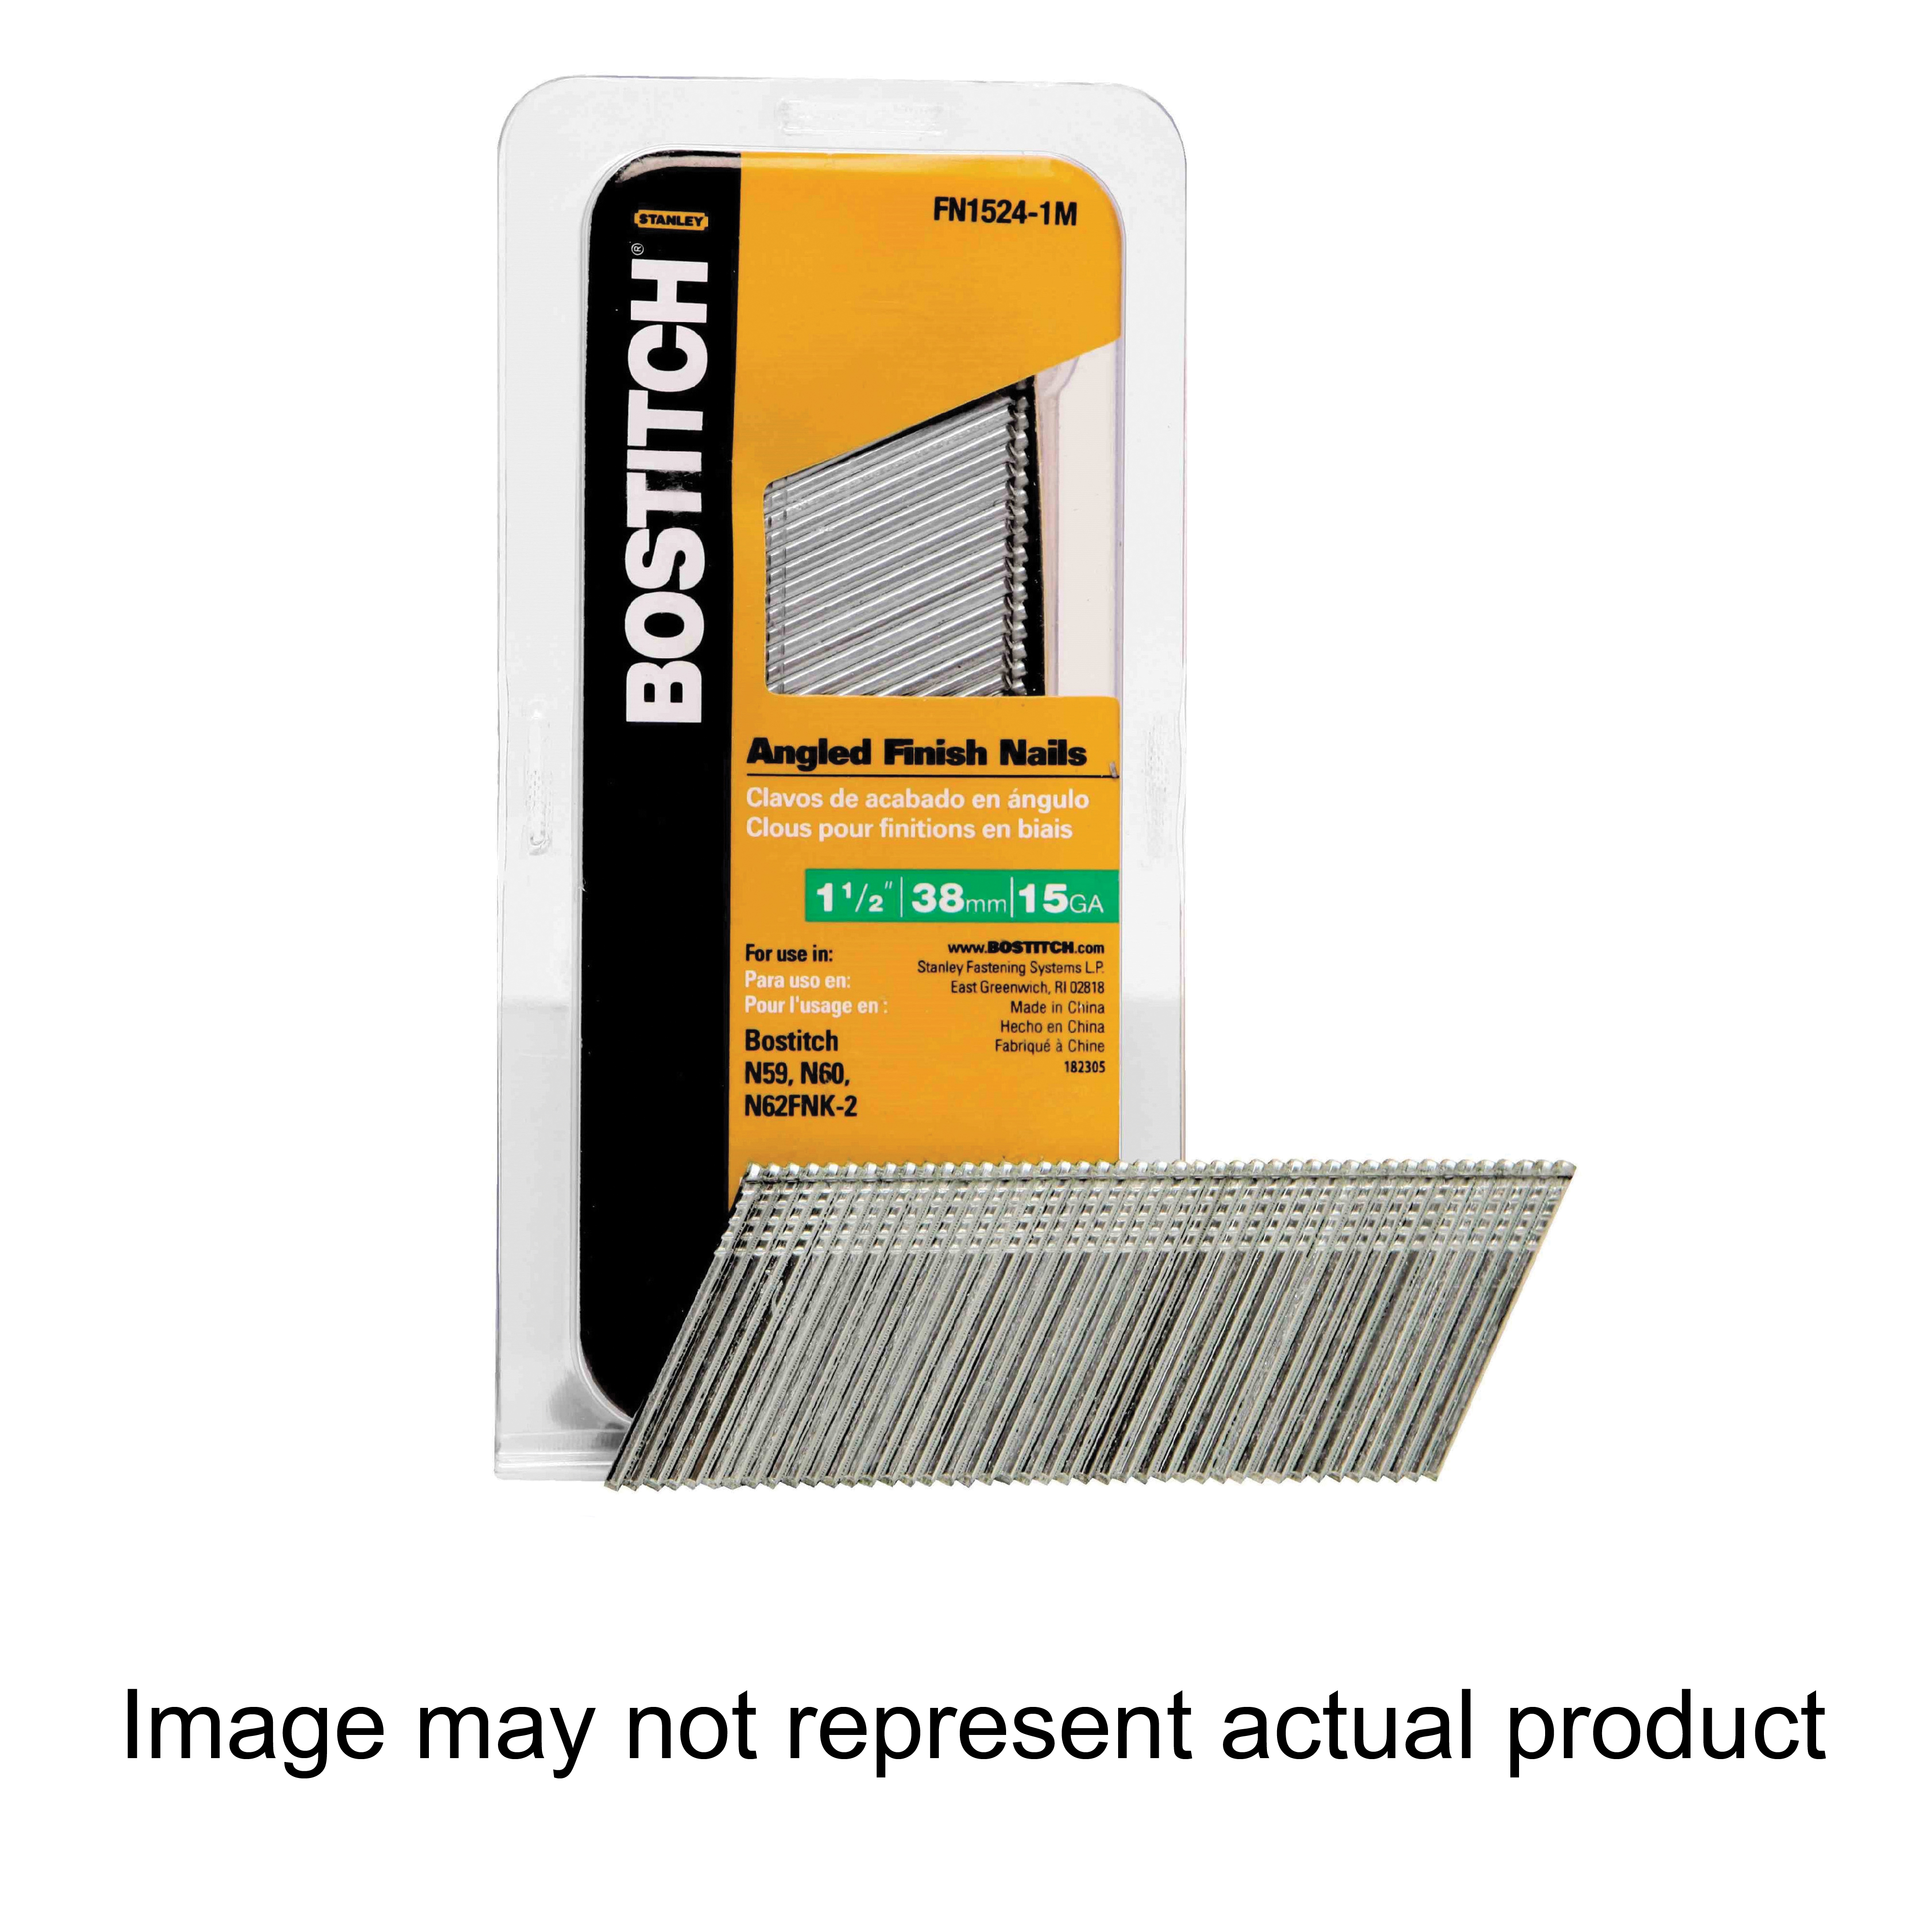 Picture of Bostitch FN1524-1MSS Pneumatic Finish Nail, 1-1/2 in L, 15 ga Gauge, Steel, 1000